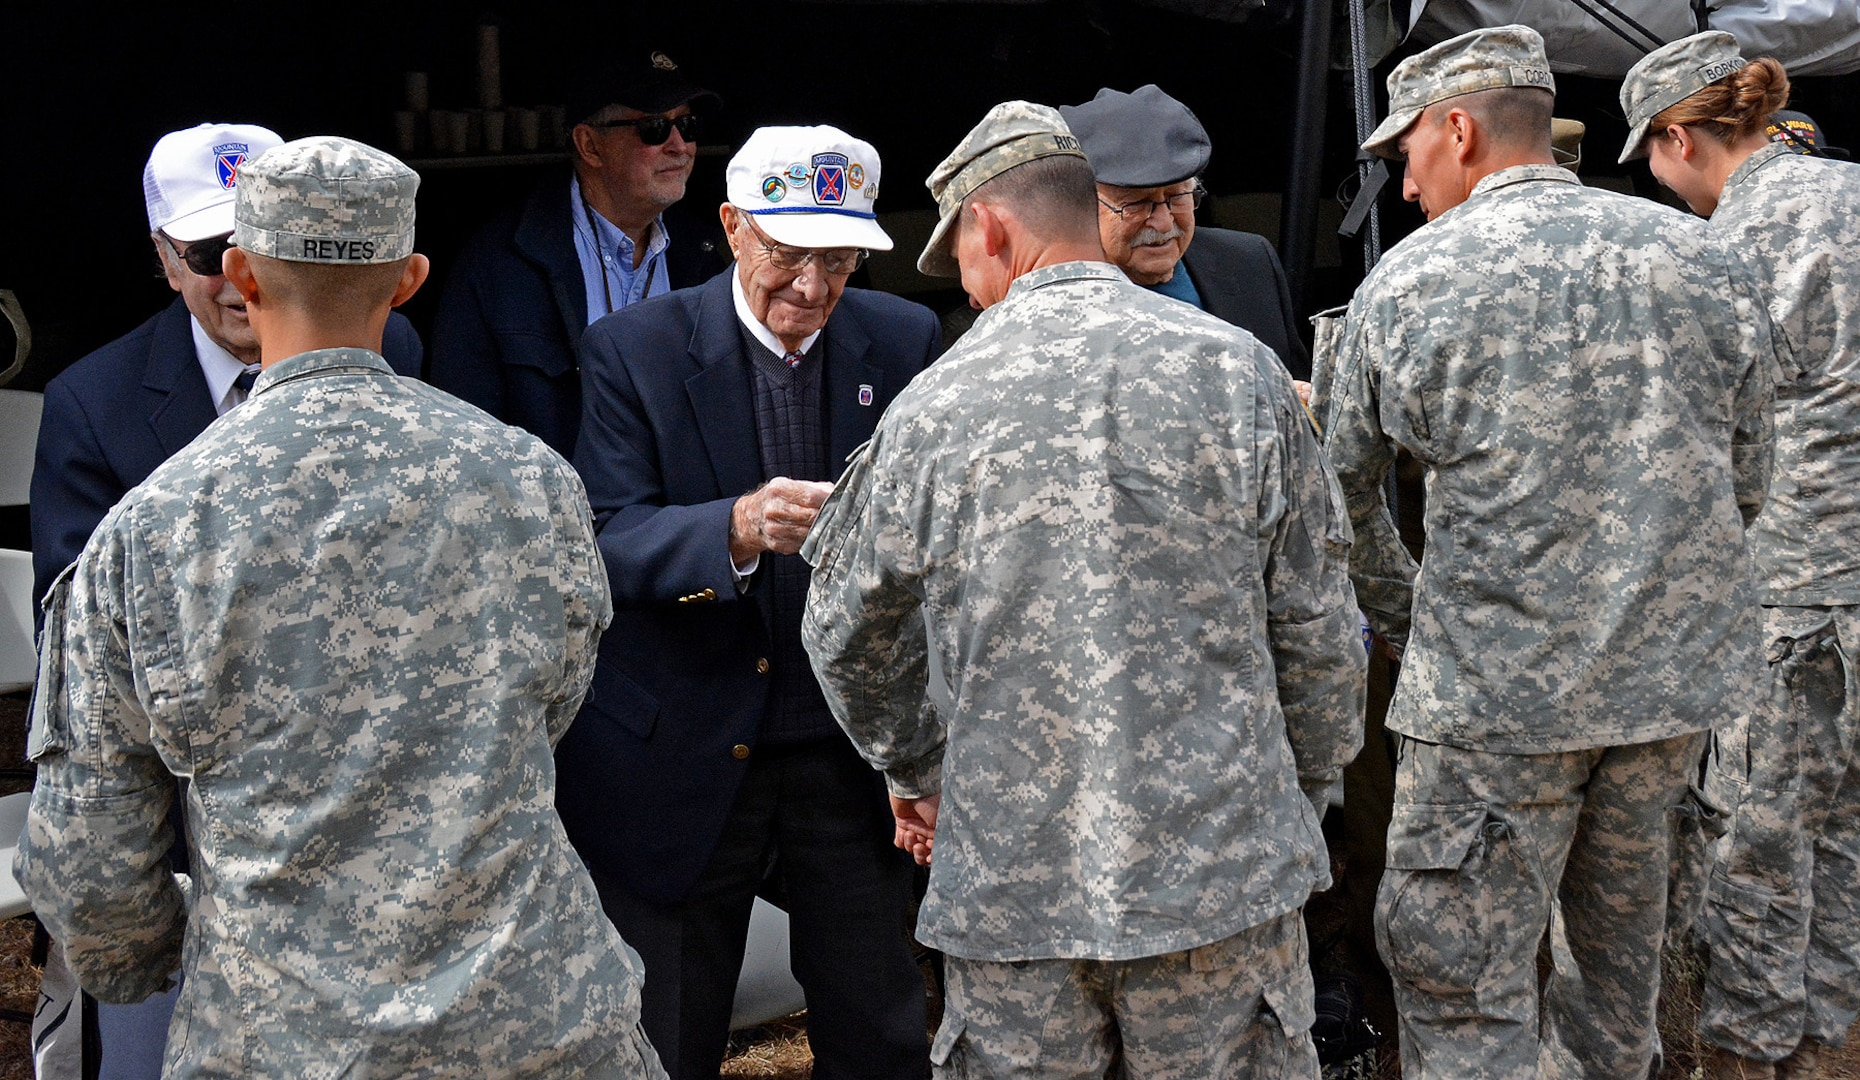 """Several 10th Mountain Division World War II veterans """"patched""""  Soldiers of 1st Battalion, 157th Infantry (Mountain), Colorado Army National Guard, during the historic re-patching ceremony at Camp Hale, Colorado Oct. 30, 2016, as the 1-157 IN (MTN) became part of the 10th Mountain Division. The 1-157th assumes its role as one of only three mountain infantry battalions in the U.S. Army, reconnecting the historic 10th Mountain Division to Colorado. (Photo by Army National Guard Staff Sgt. Lalita Laksbergs)"""